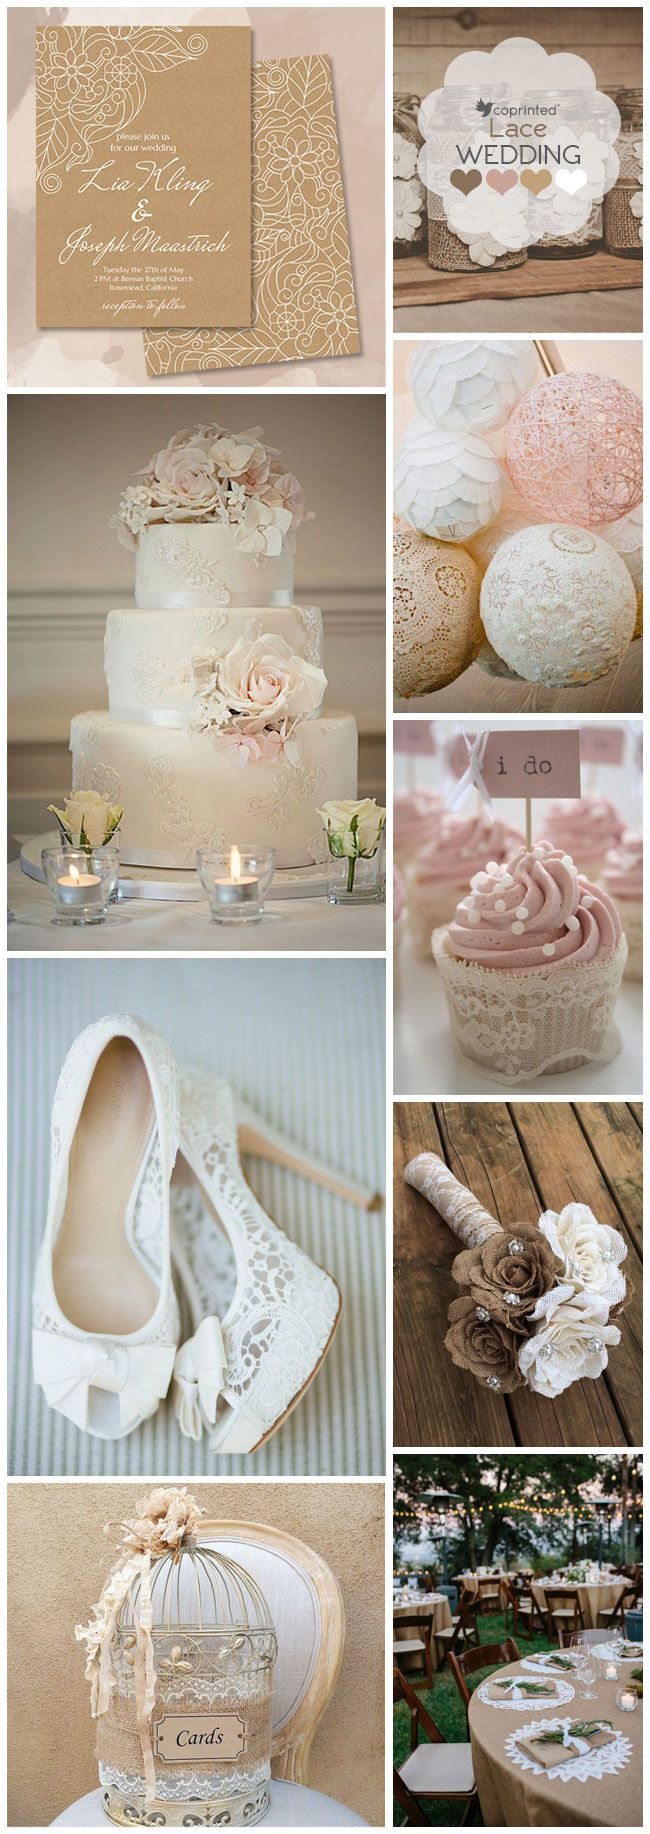 Lace-Wedding-Theme-Inspiration-Board